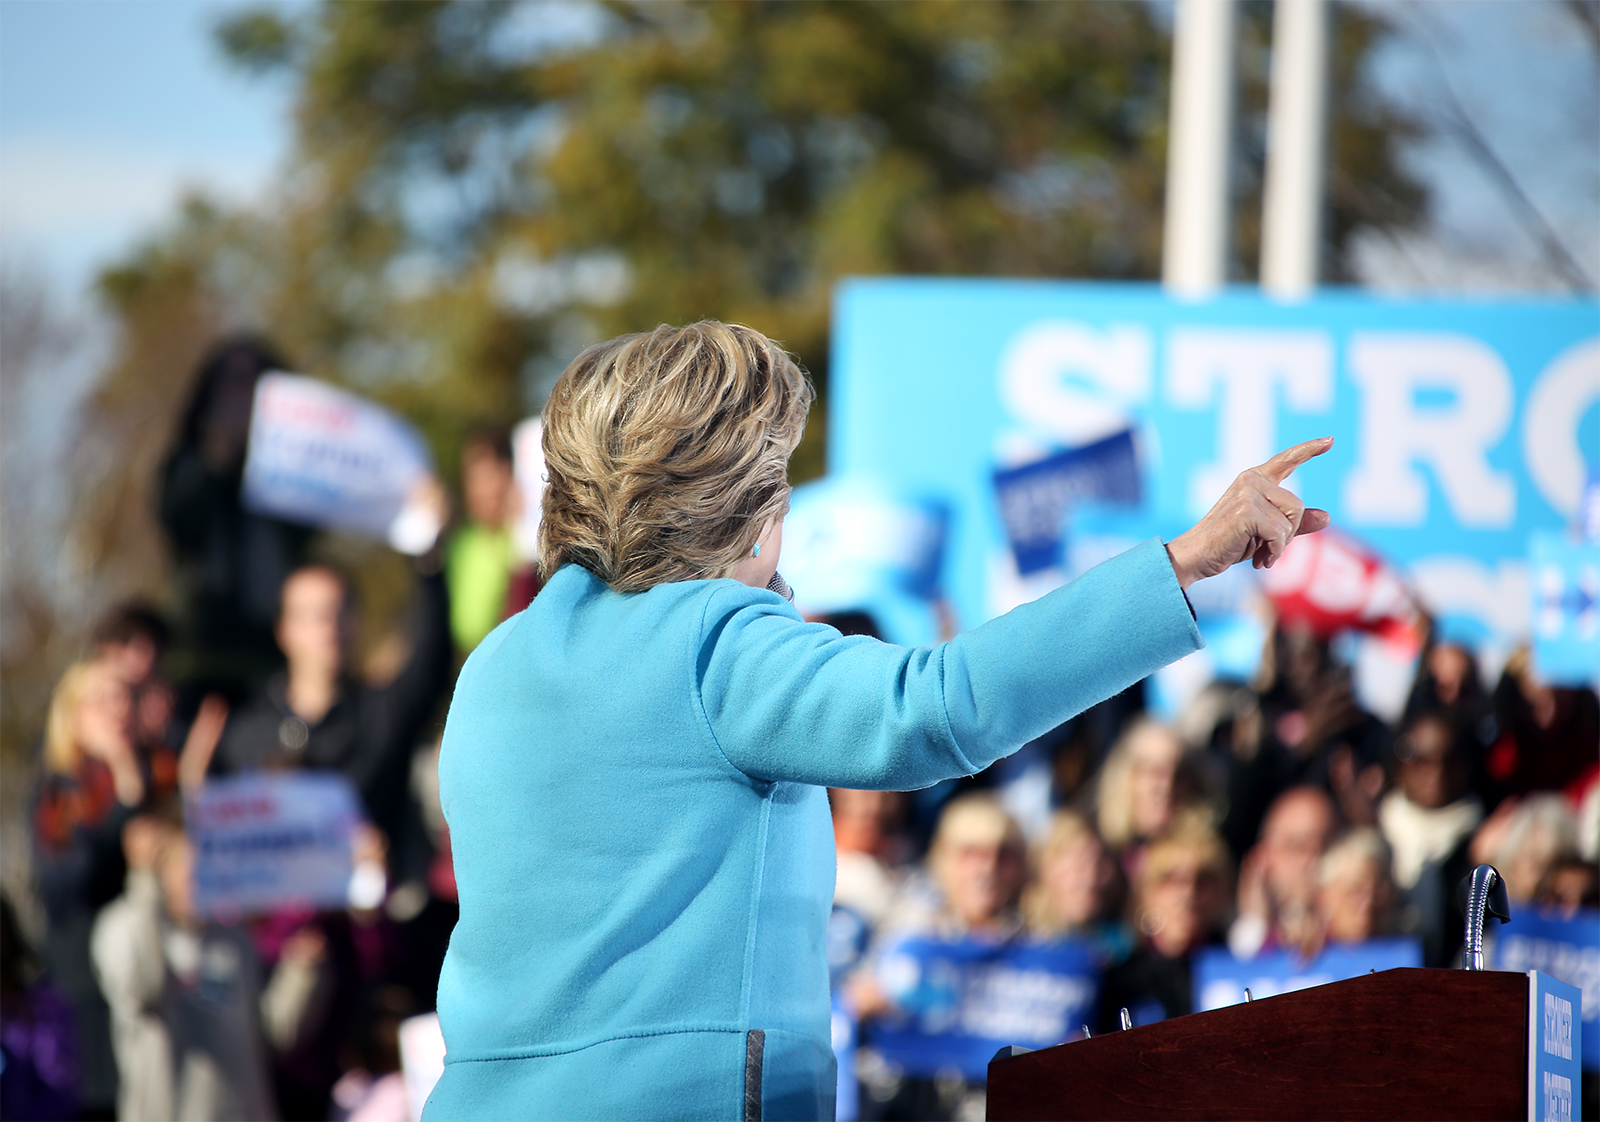 Democratic presidential candidate Hillary Clinton addresses the crowd during a campaign rally in Manchester, N.H.